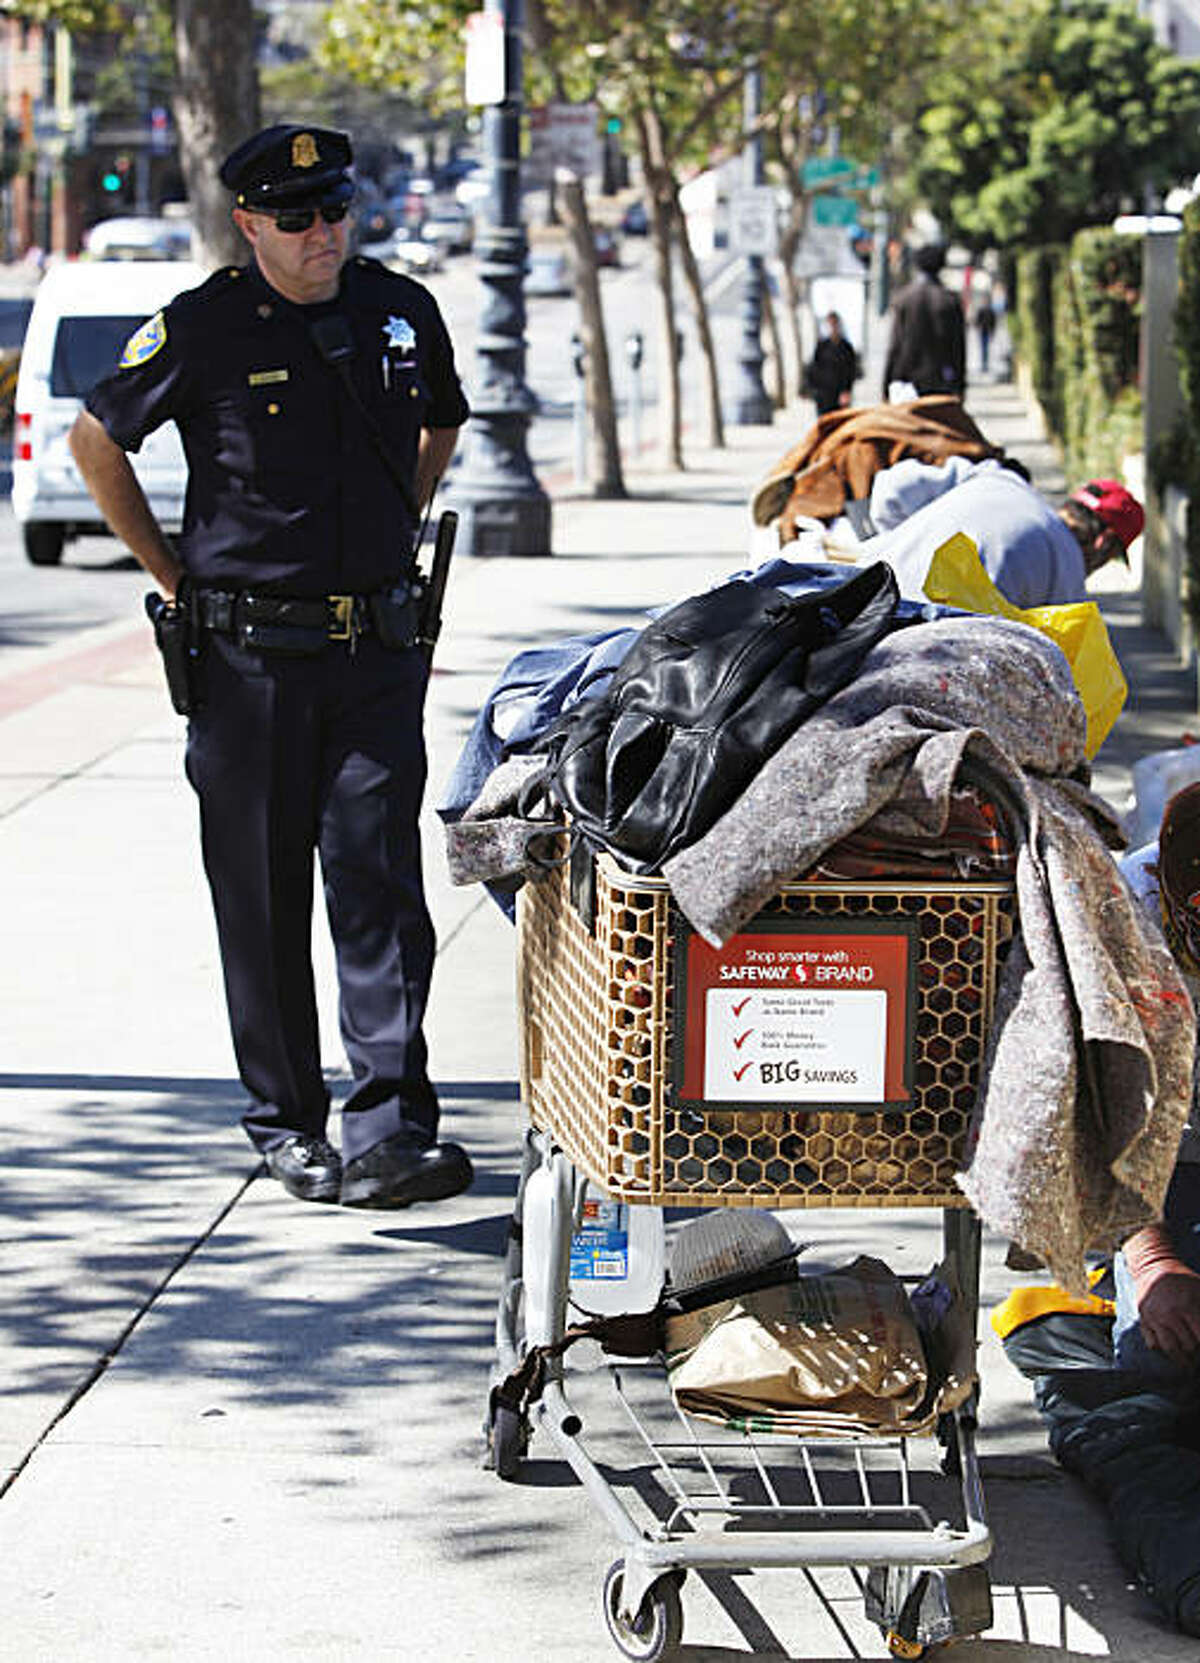 Officer Gary Buckner tells two homeless men that they must move from where they are lying on the sidewalk on Market Street in San Francisco, Calif. on Friday September 10, 2010.